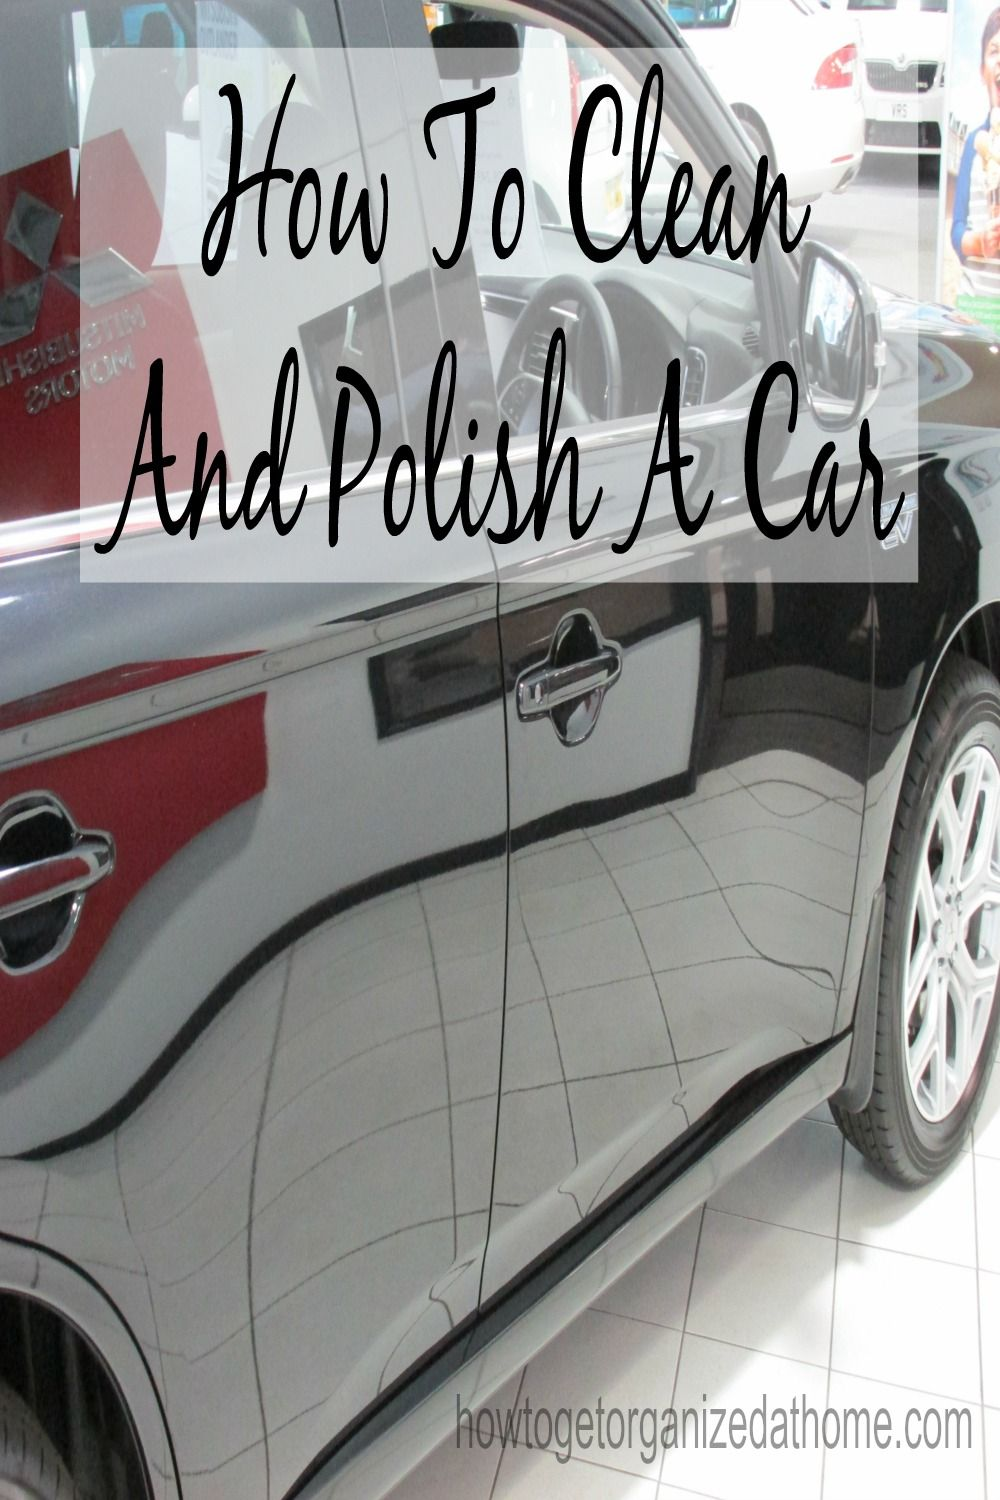 best 25 car polish ideas on pinterest autopia car care vintage ads and retro ads. Black Bedroom Furniture Sets. Home Design Ideas